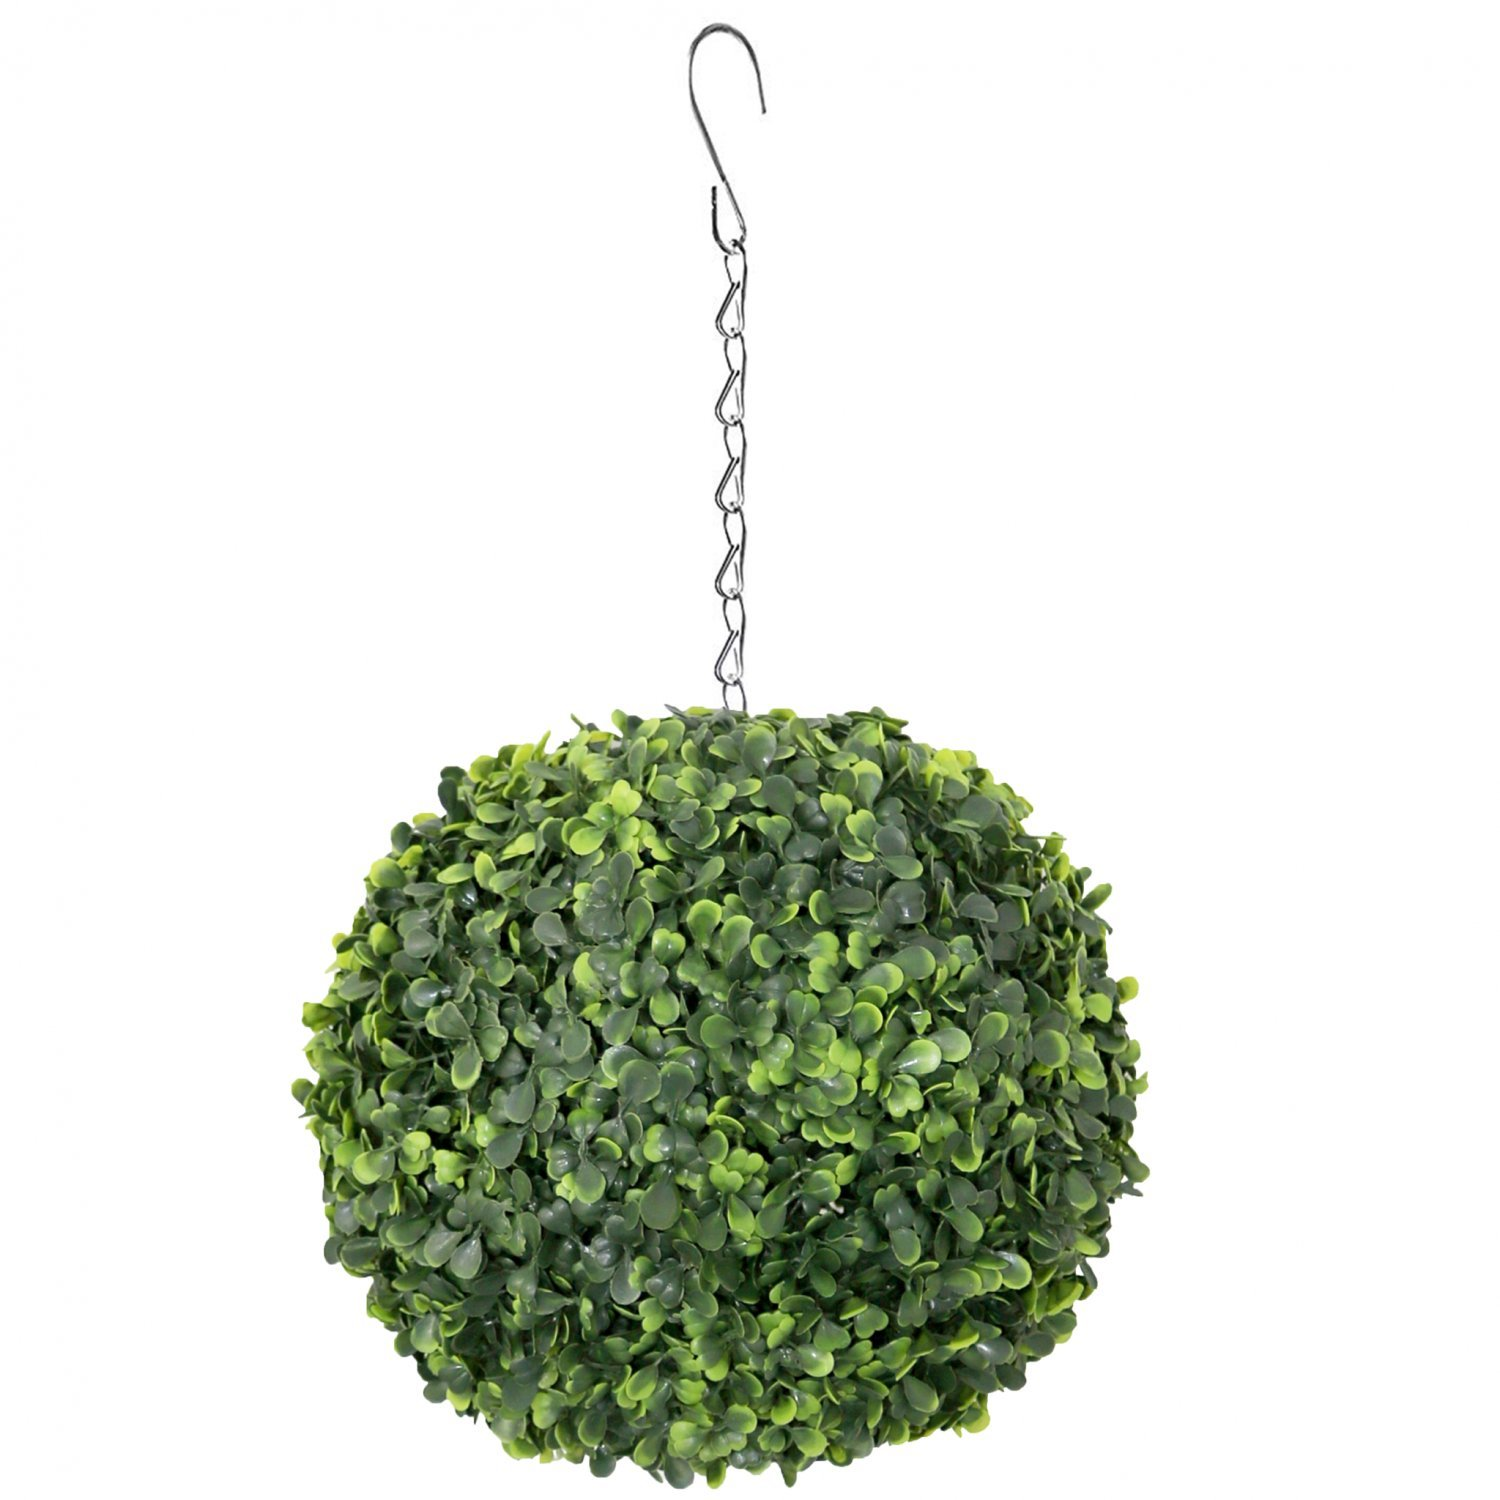 Artificial 28cm Hanging Topiary Tree Boxwood Buxus Ball 12 99 Oypla Stocking The Very Best In Toys Electrical Furniture Homeware Garden Gifts And Much More